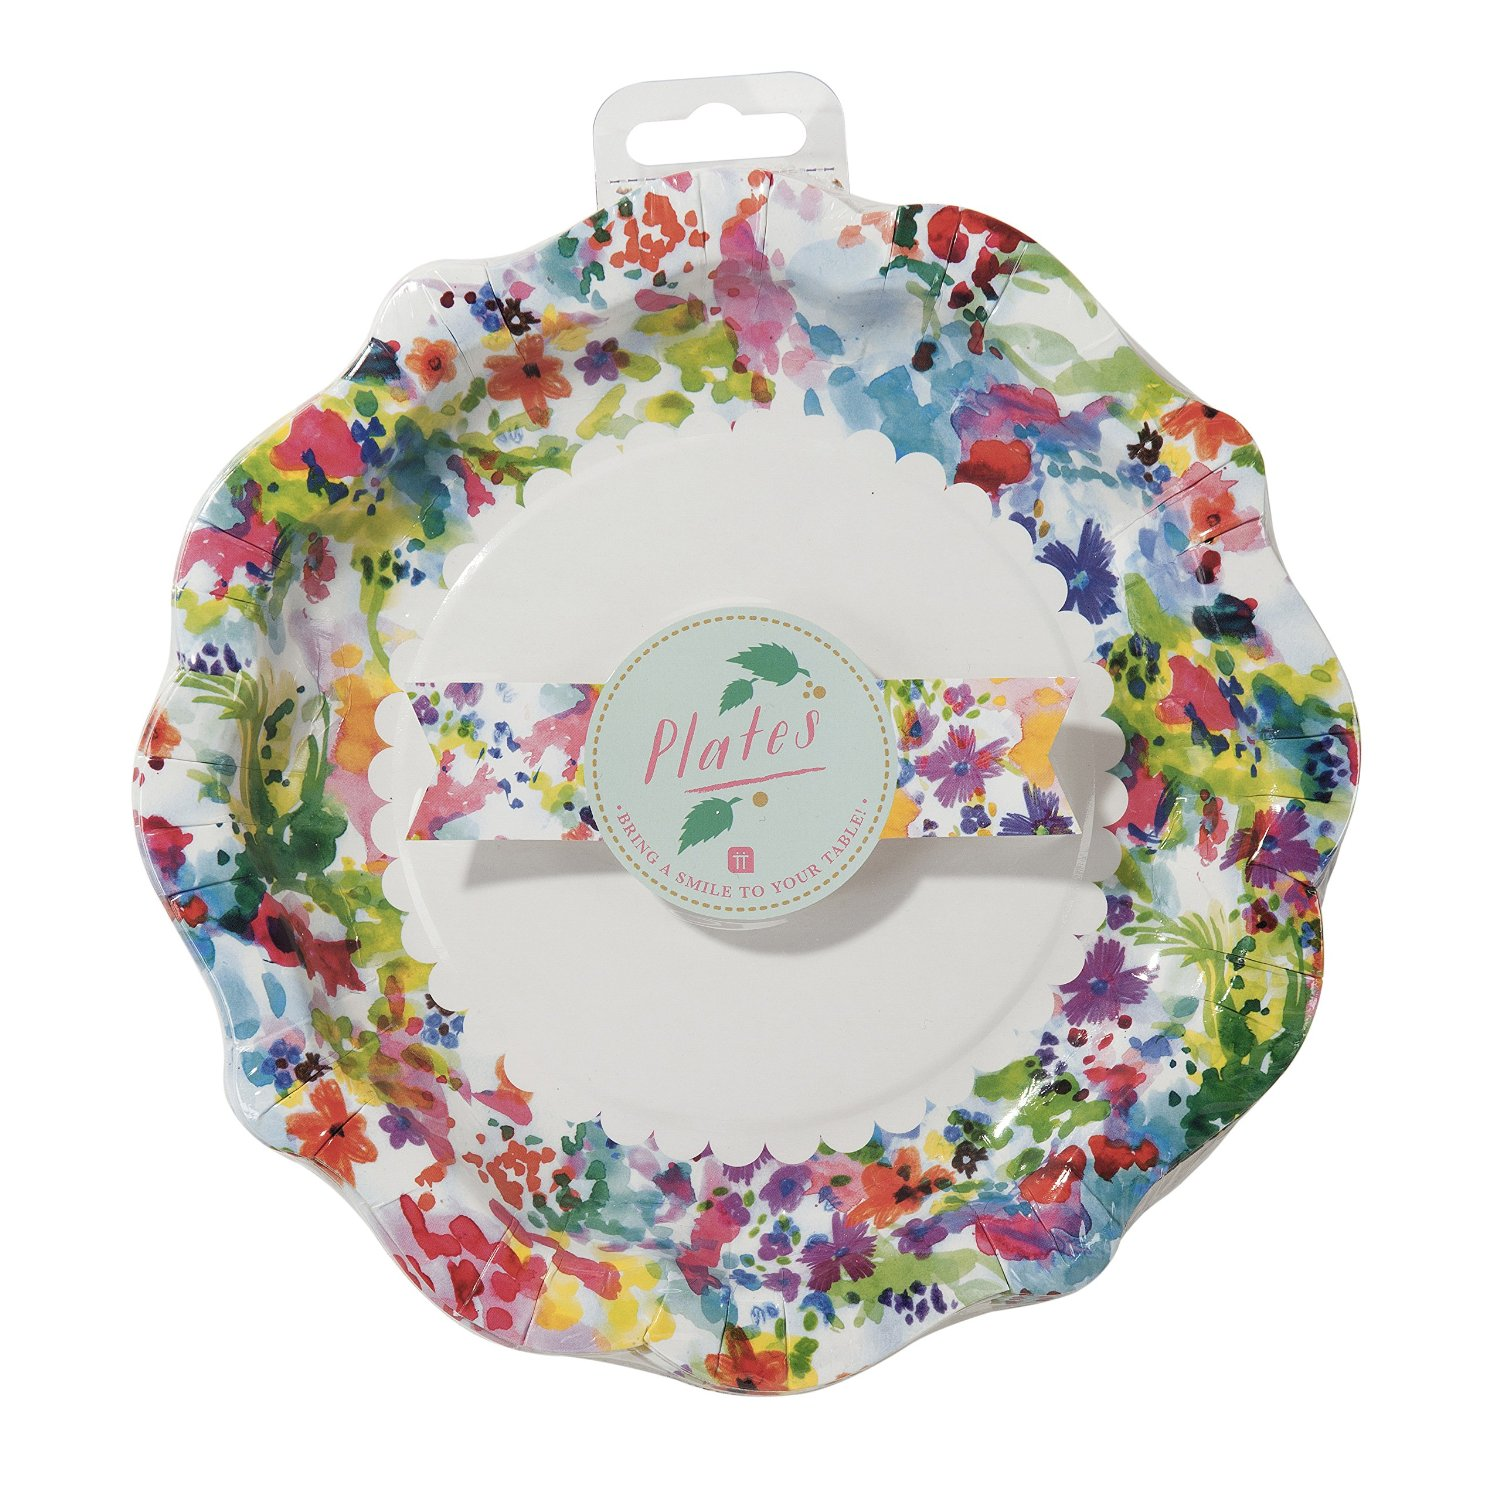 Talking Tables Floral Fiesta Large Colorful Disposable Plates, 12 count, for a Tea Party, Birthday or Luau Party